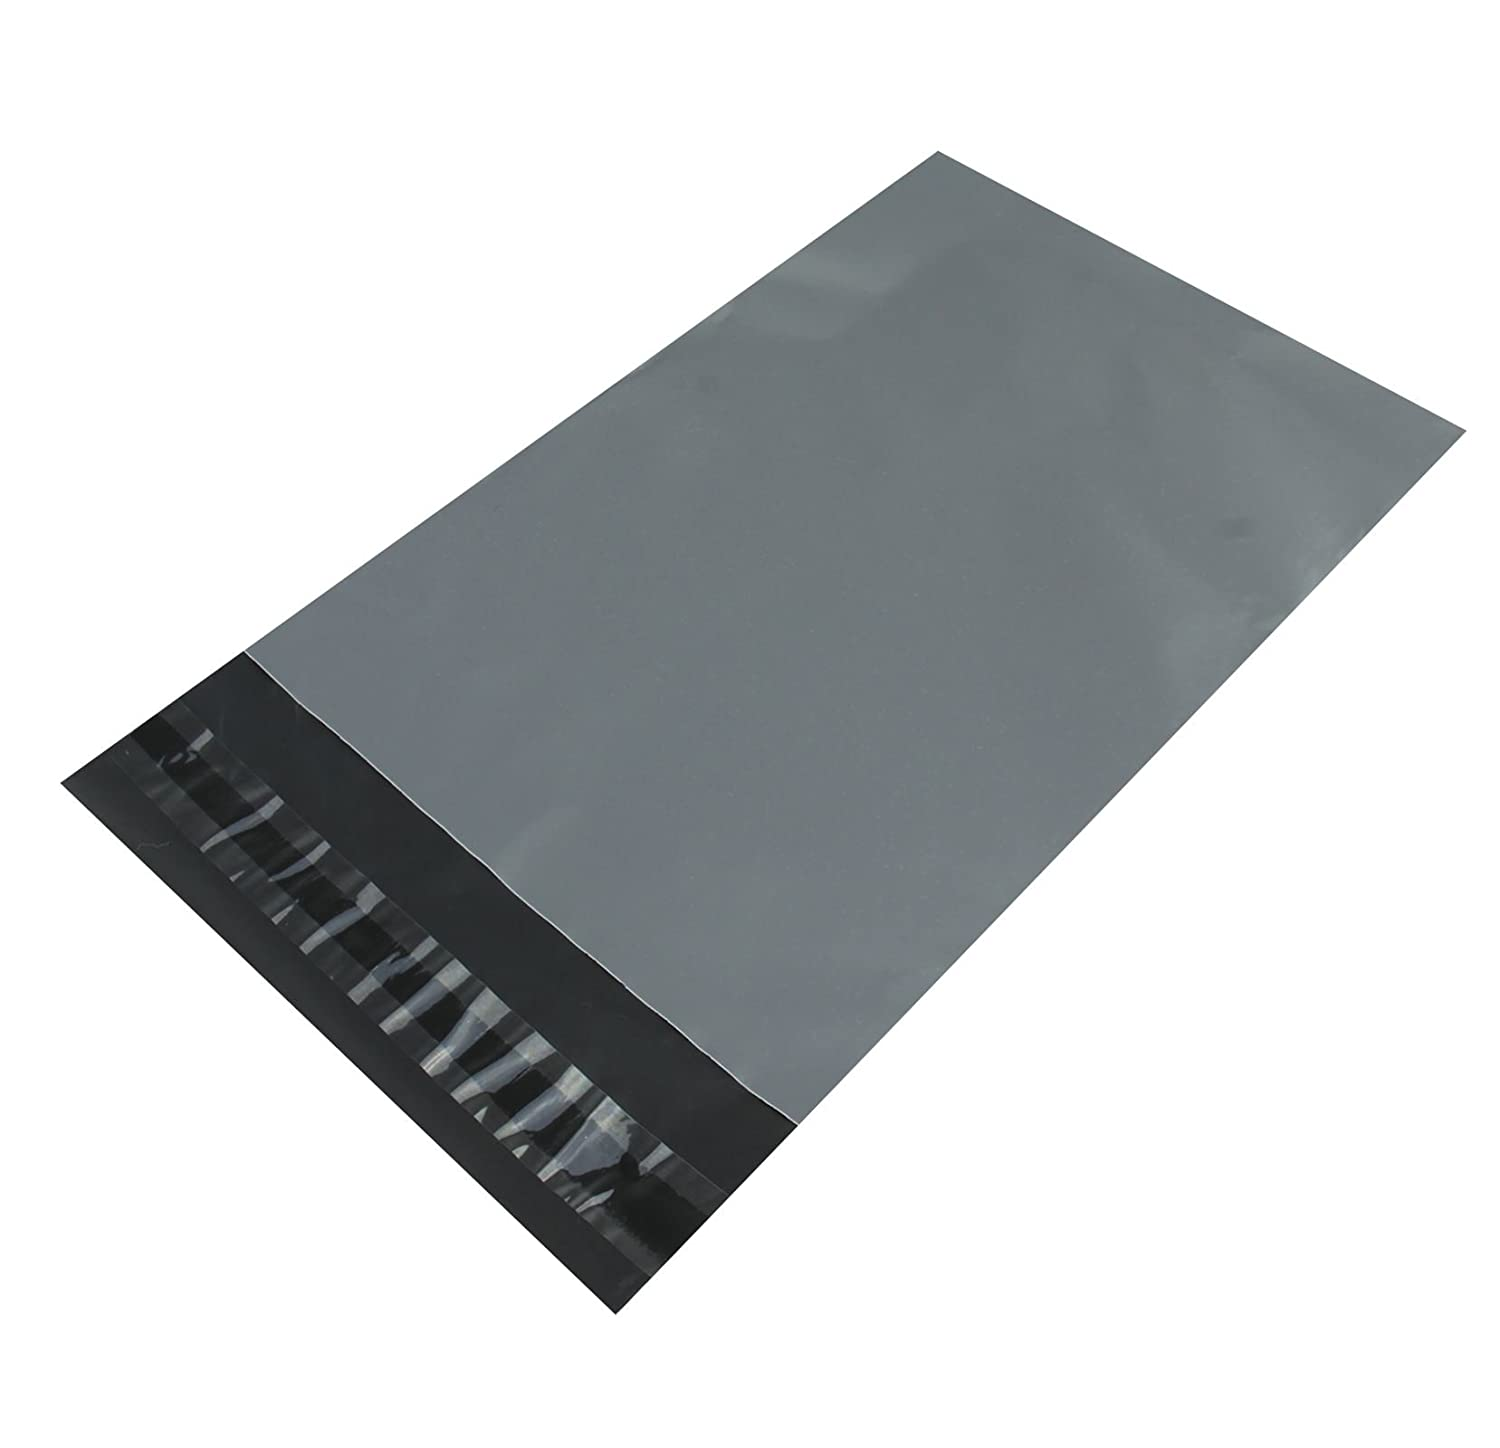 100 Grey Plastic Bags Mailing Postal Strong HIGH QUALITY 50X65cm CLEARANCE SALE